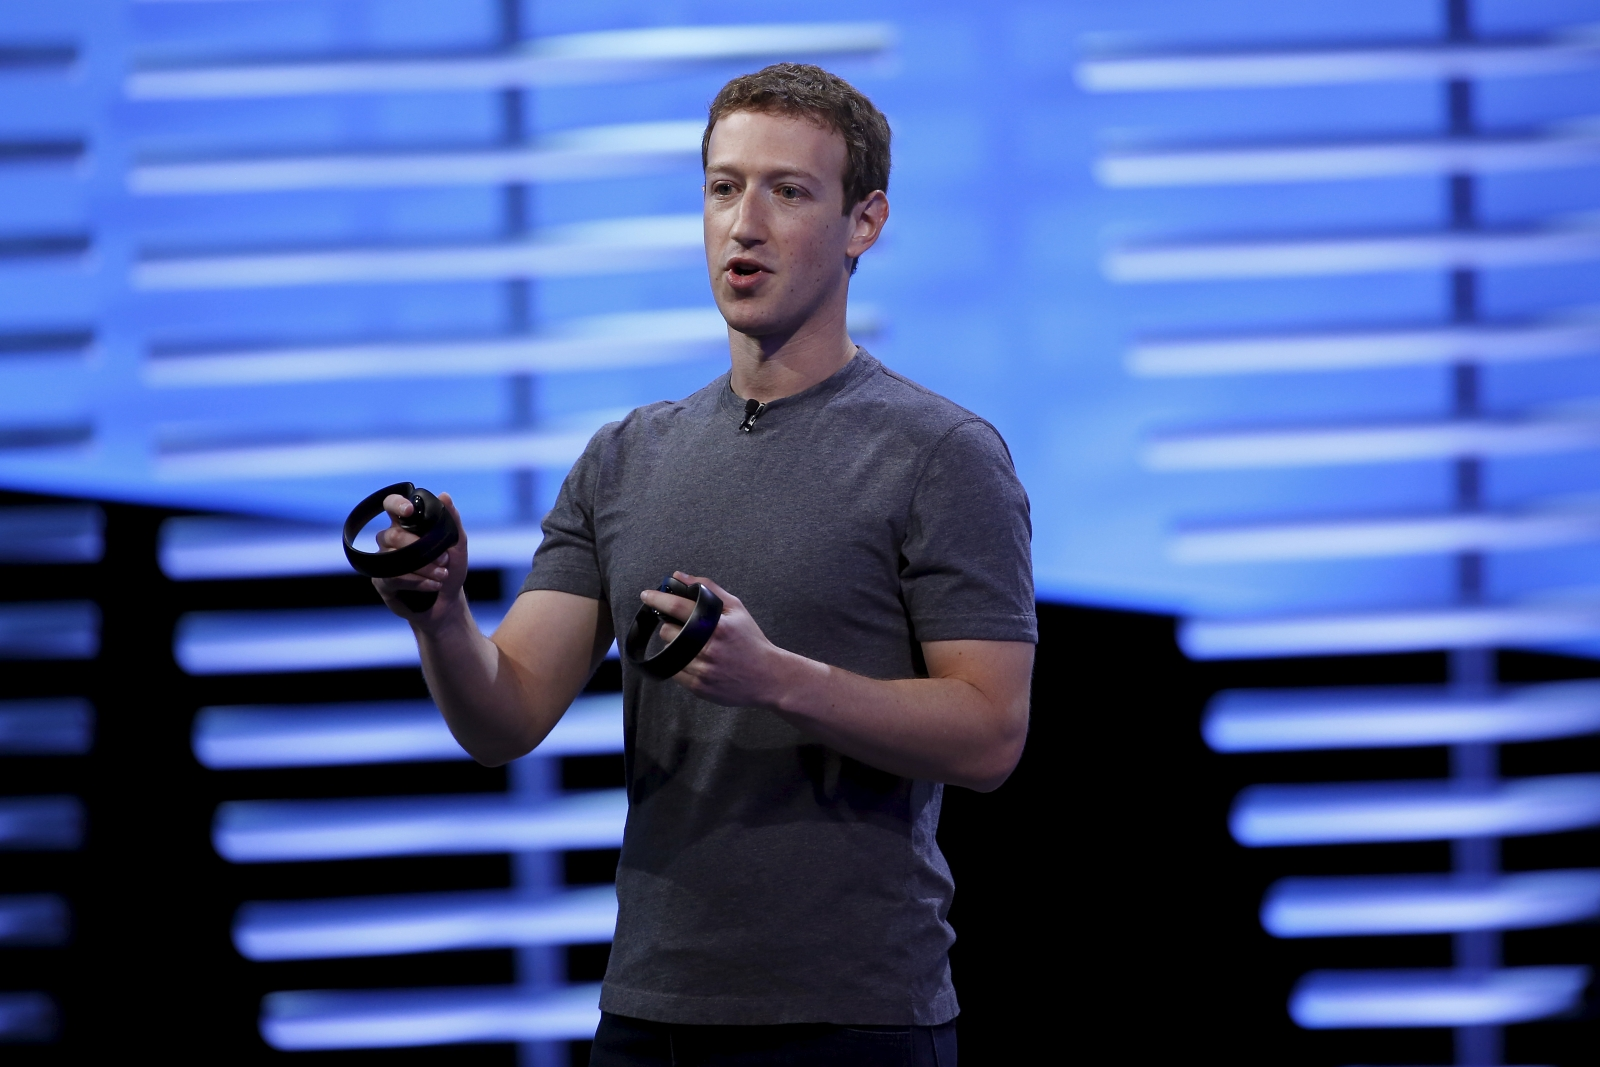 Facebook CEO Marc Zuckerberg